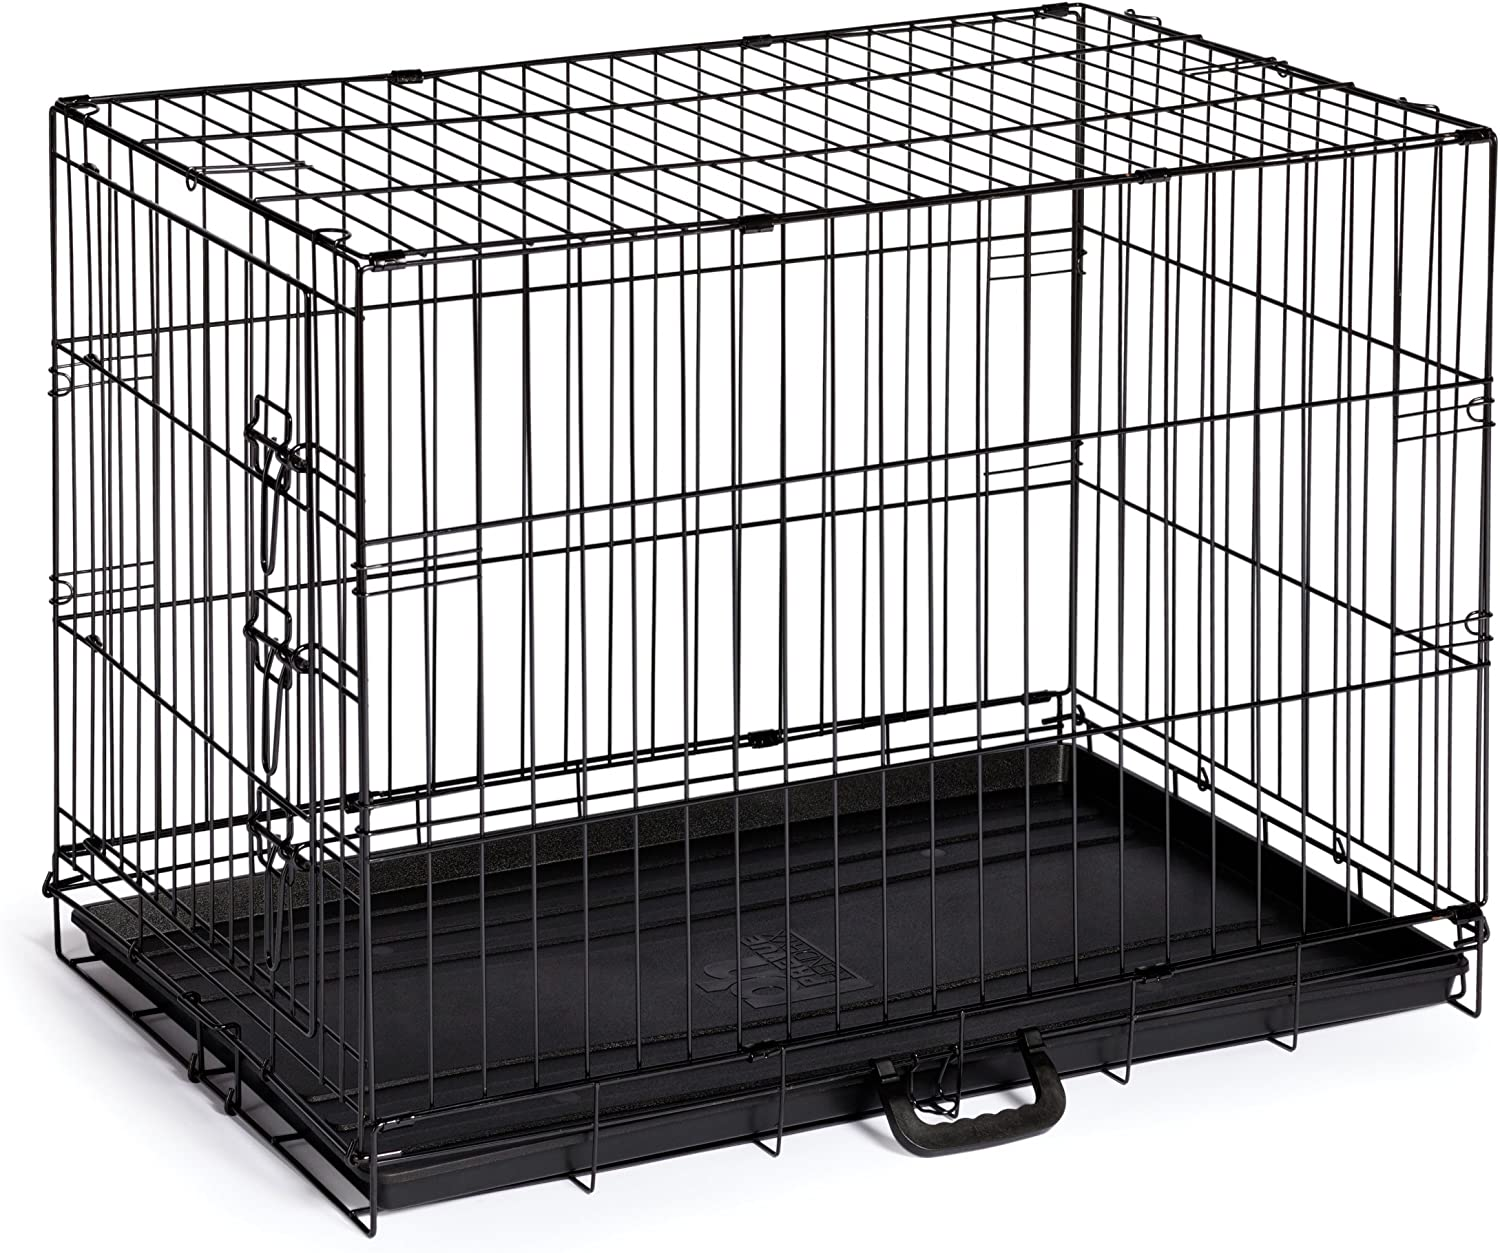 Home OnTheGo Single Door Dog Crate, Medium, Black